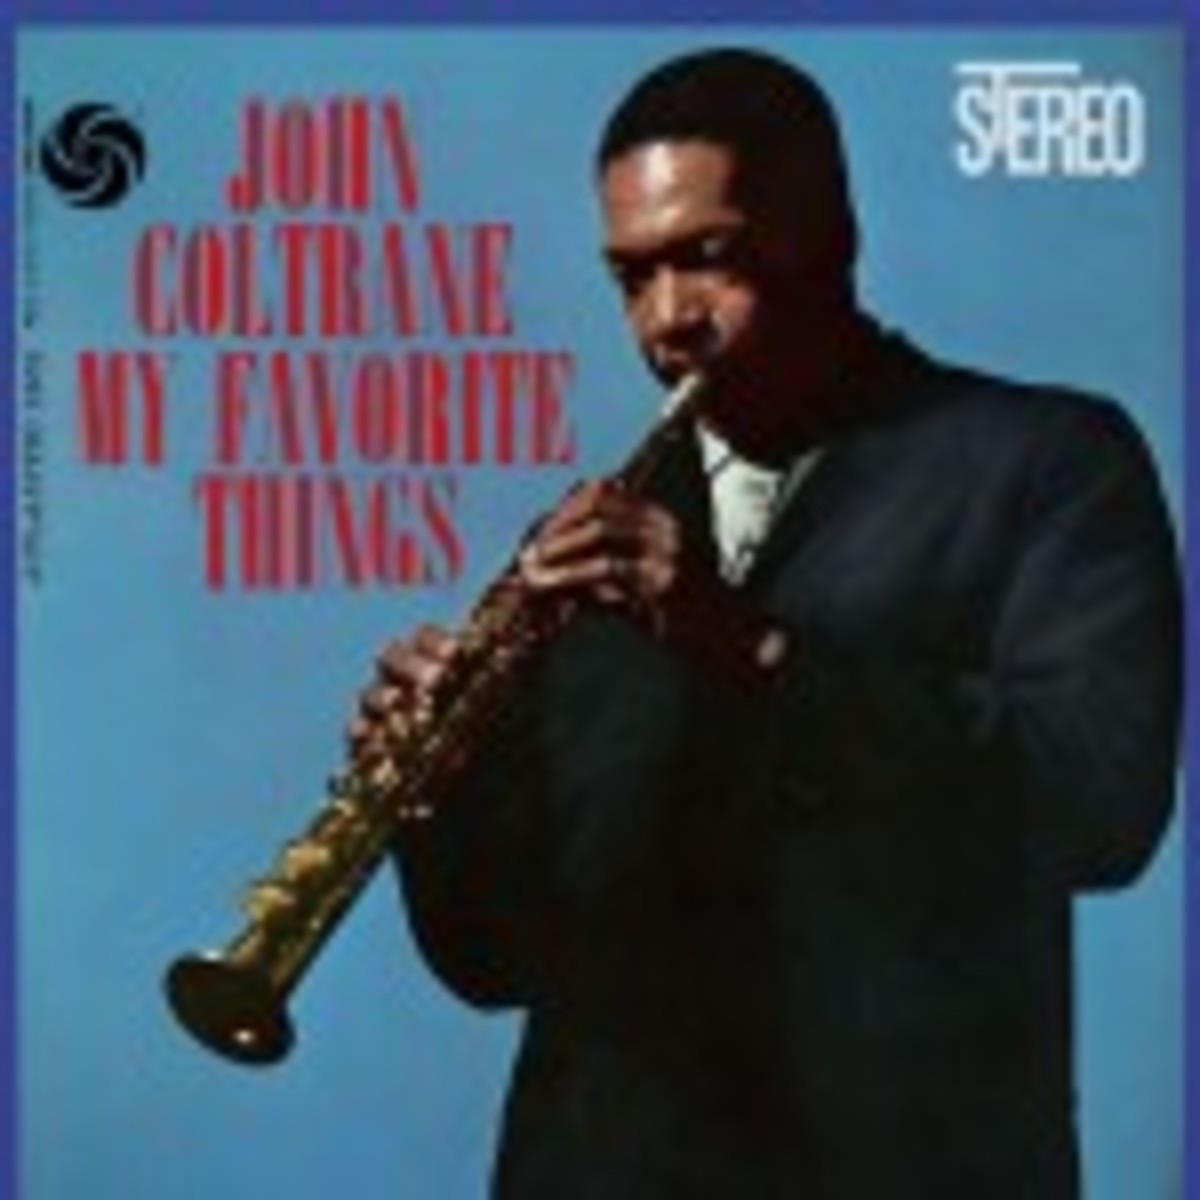 coltrane-my-favorite